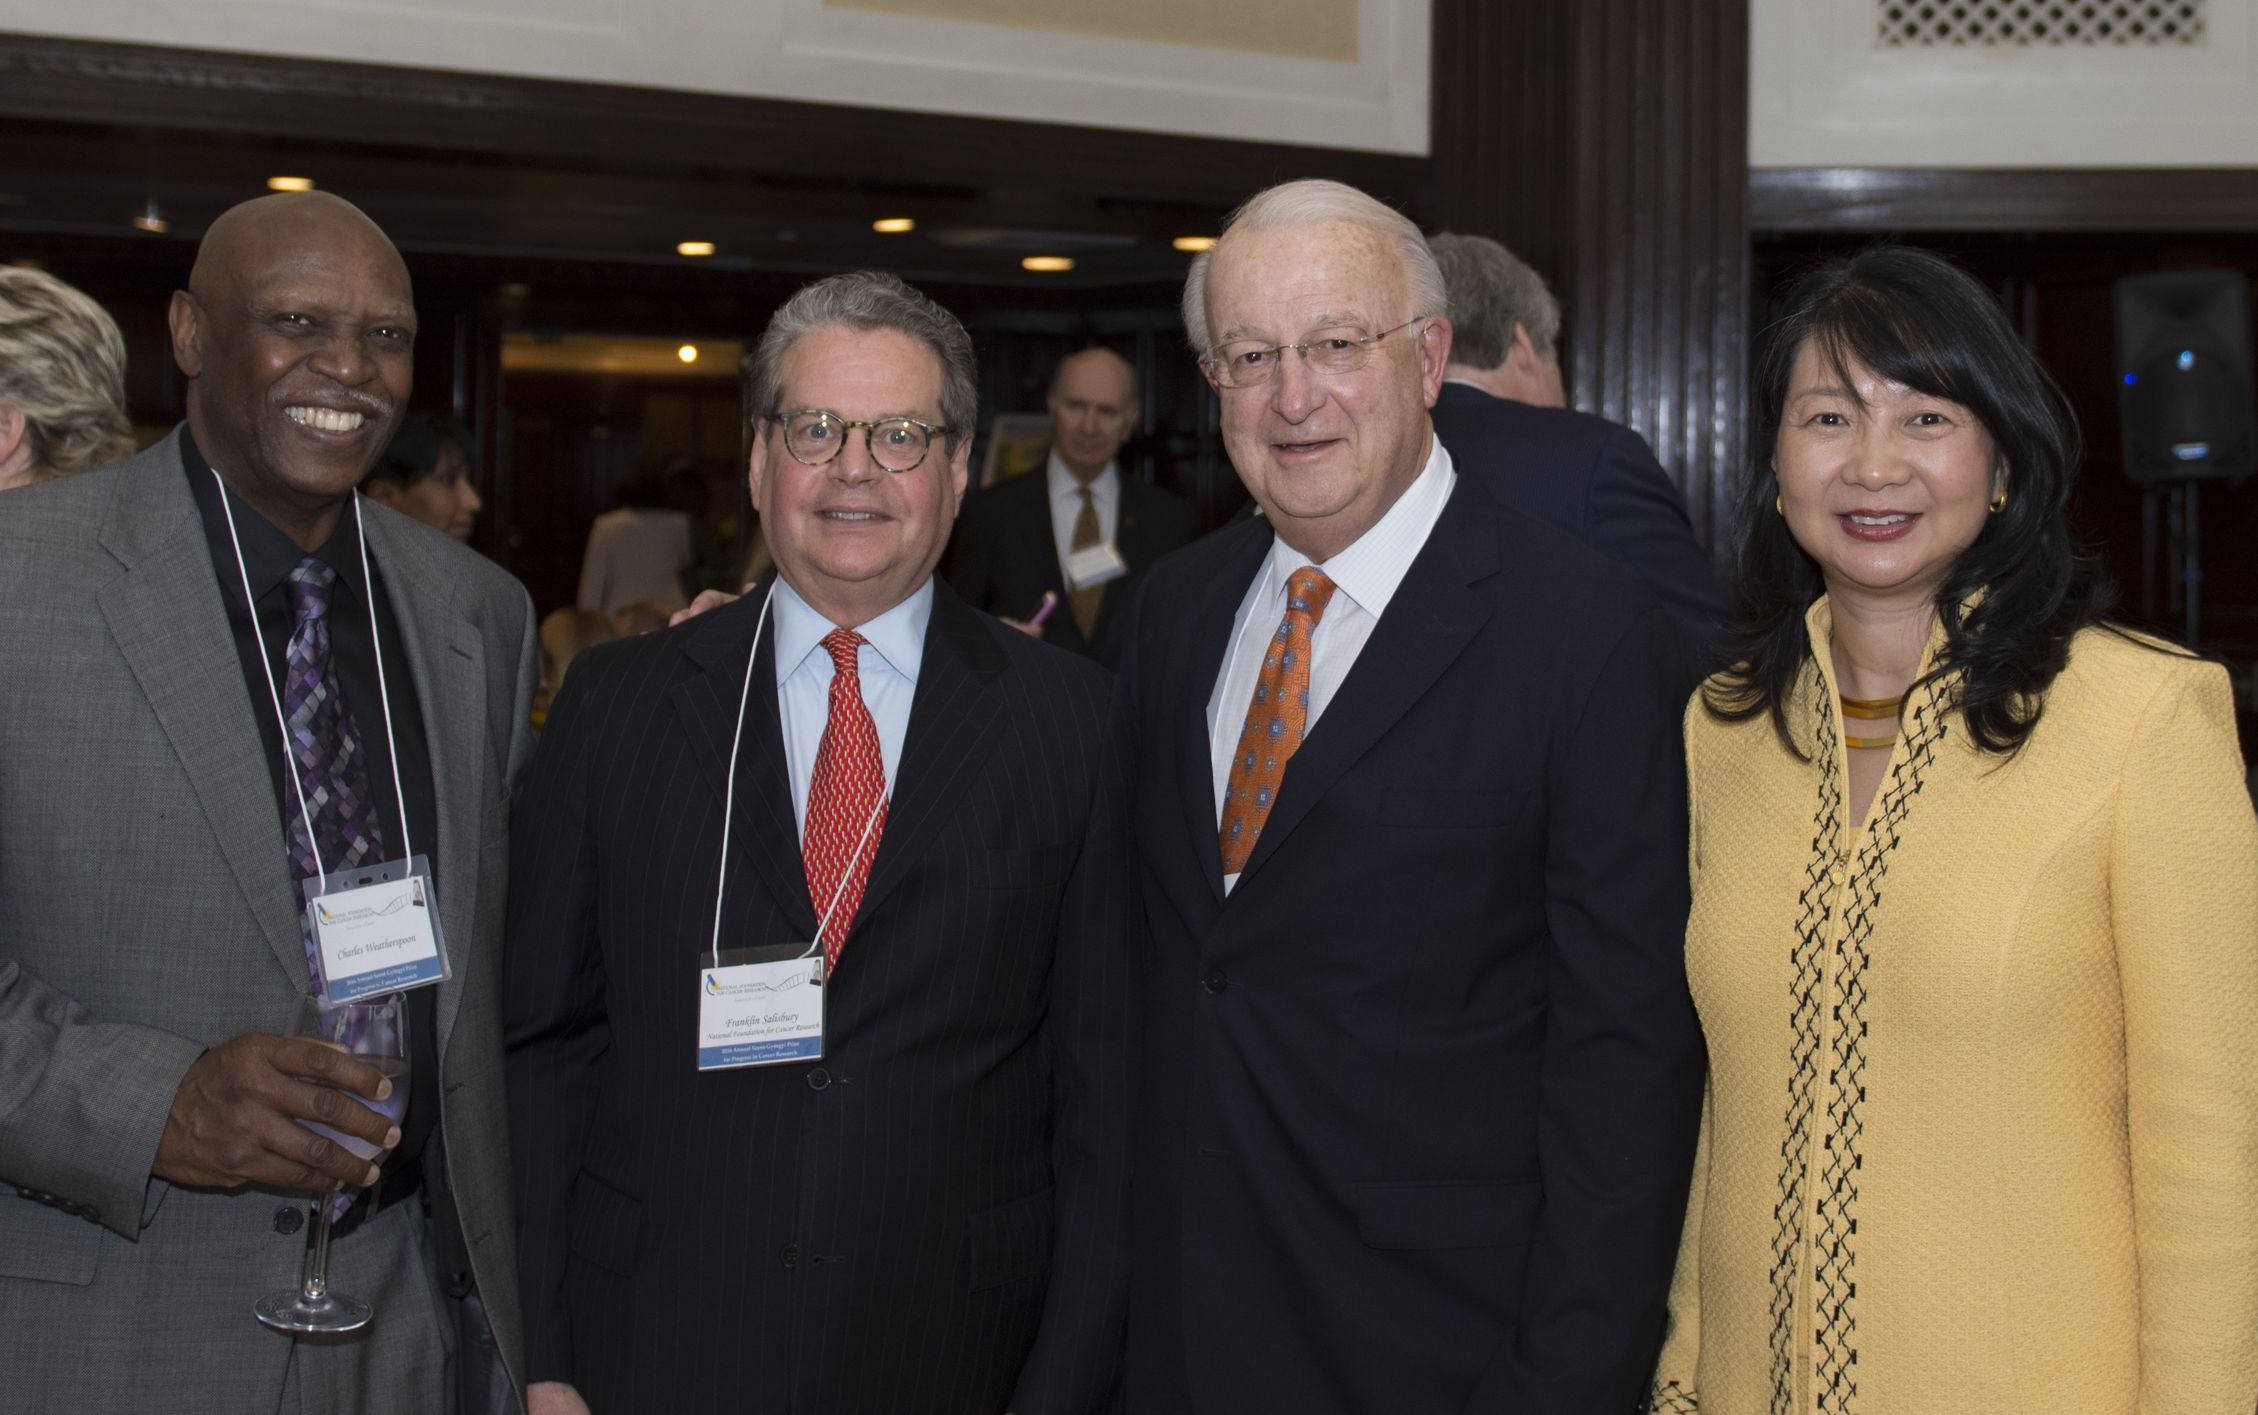 NFCR supporters L-R, Charles Weatherspoon and Gordon J. Peterson, share their support with NFCR CEO Franklin Salisbury and NFR President, Dr. Sujuan Ba